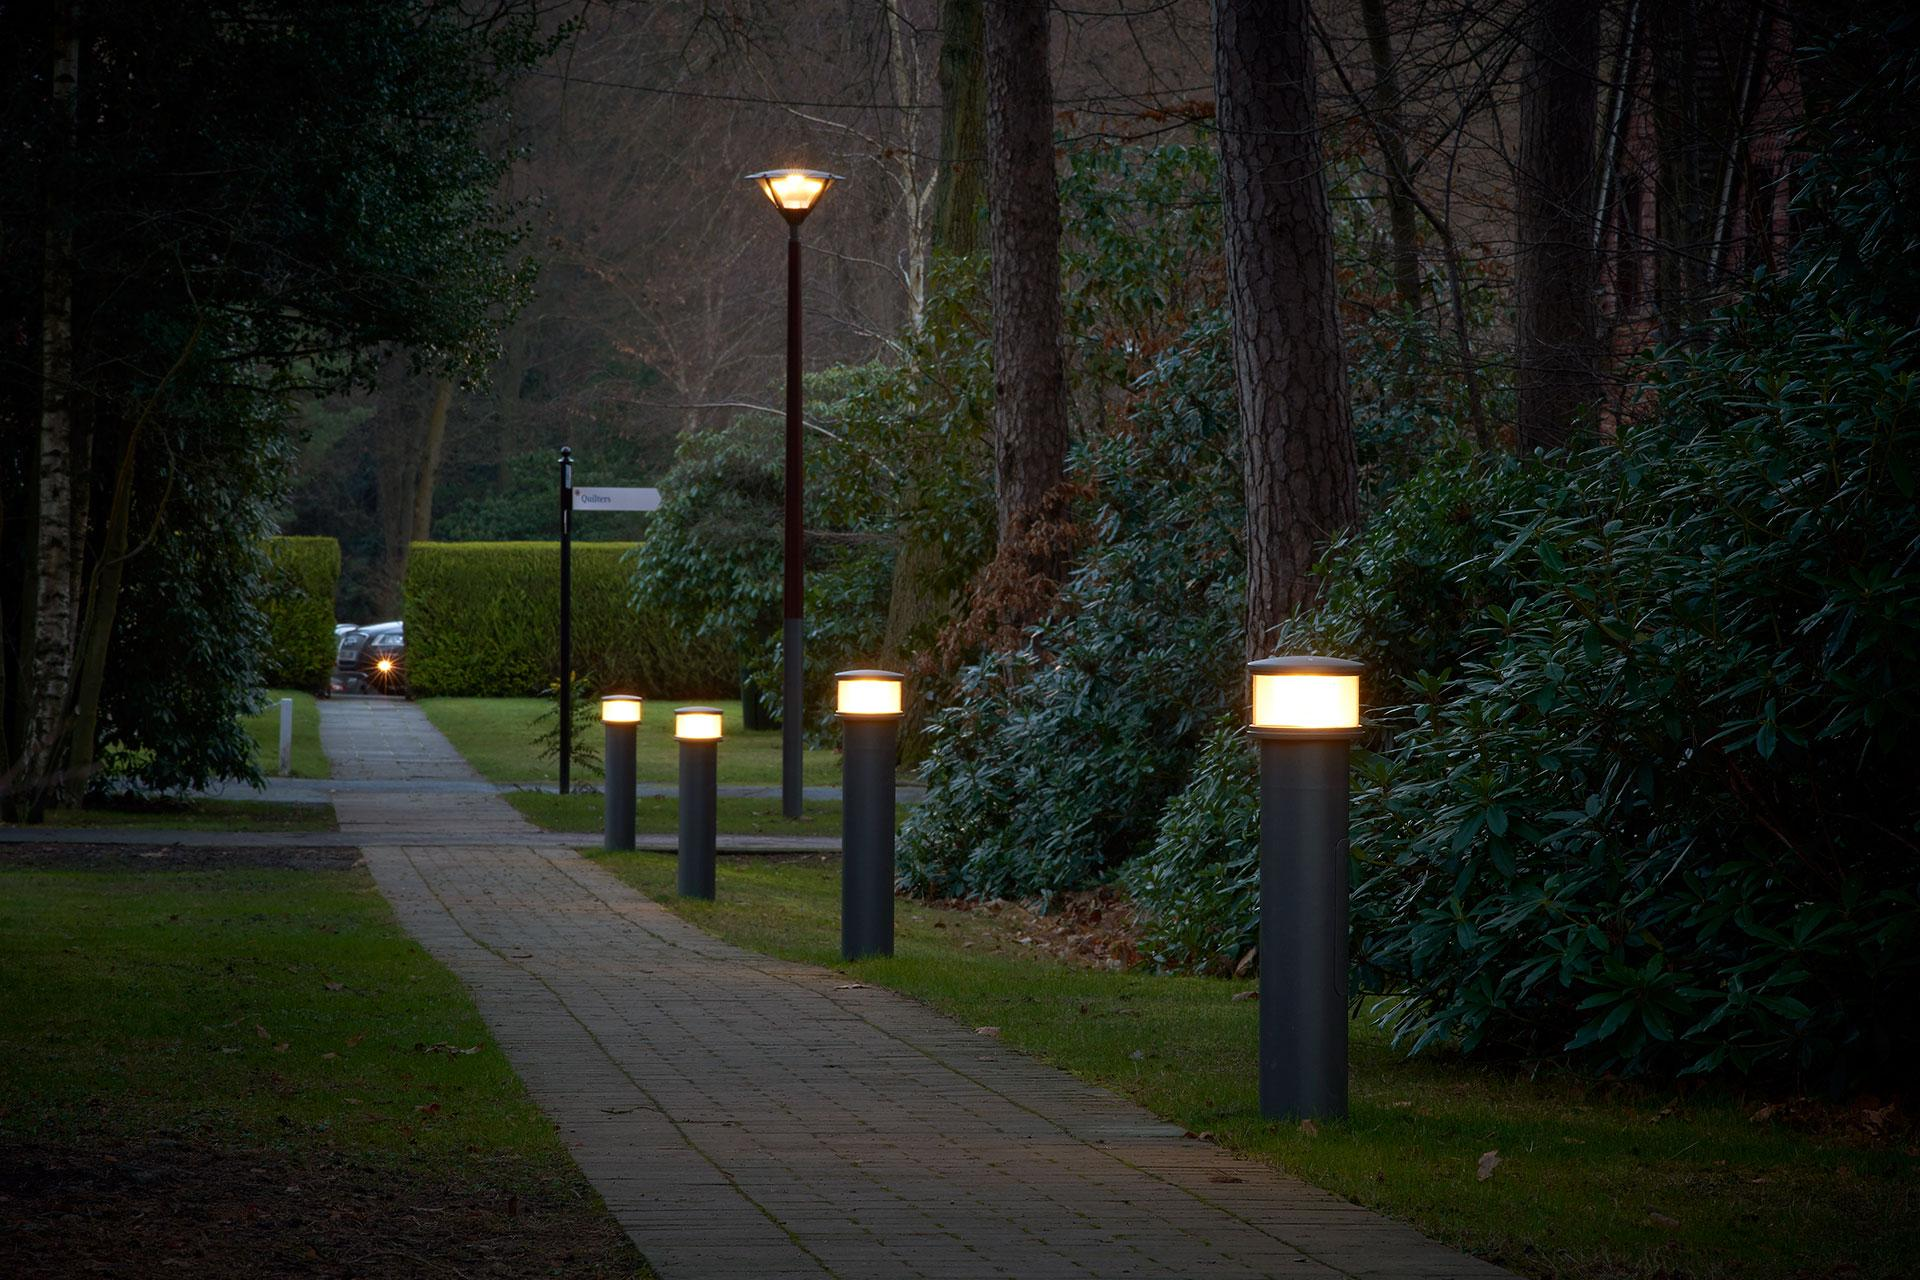 Sustainable lighting solution ensures safety and comfort for pupils at St Marys Ascot